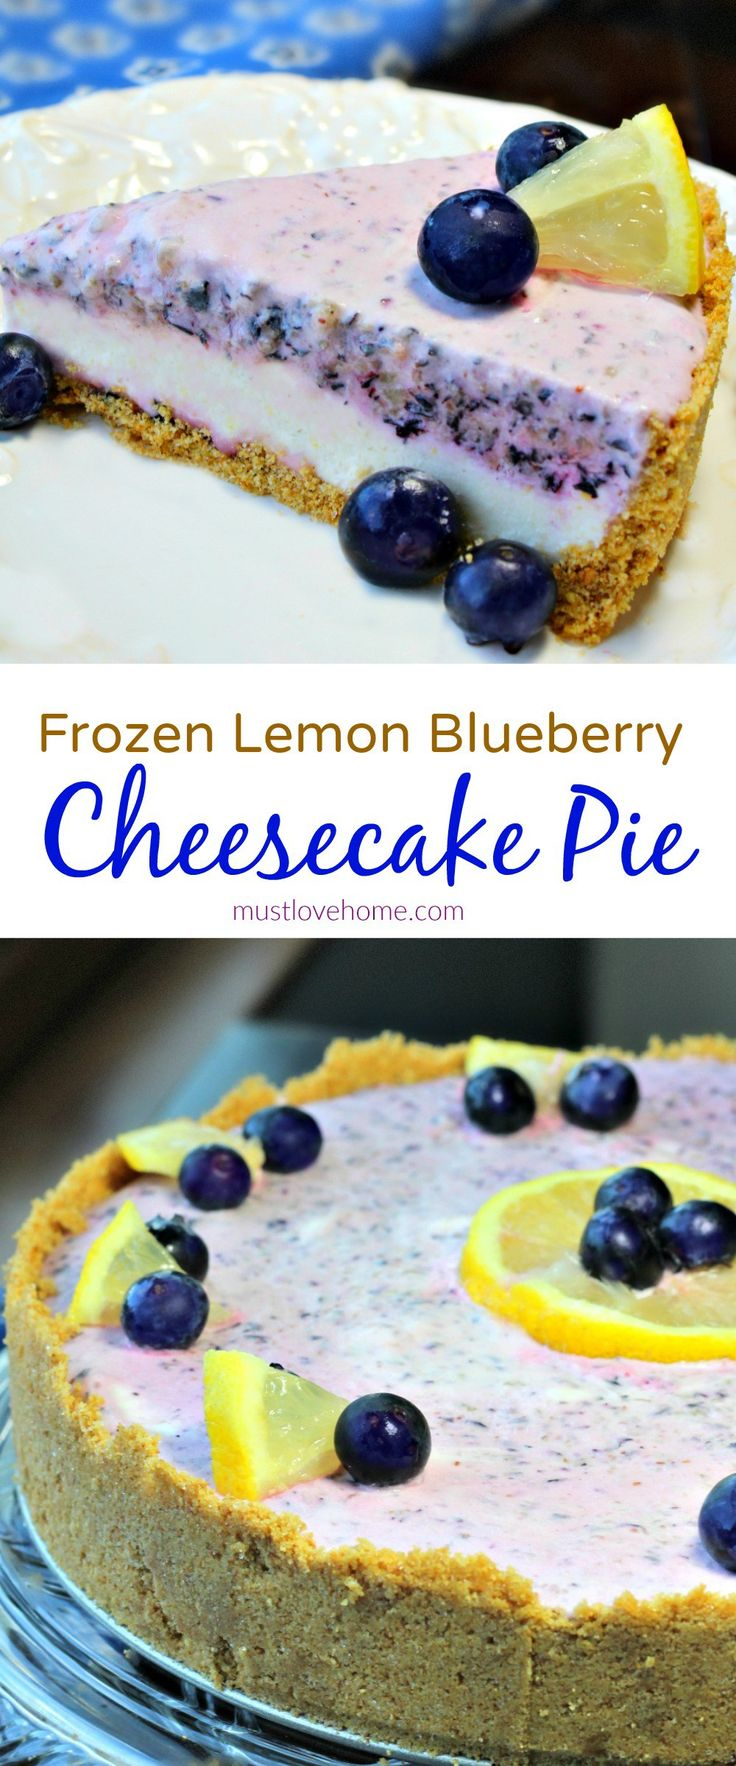 Frozen Lemon Blueberry Cheesecake Pie - a frosty no-bake summertime treat that combines cheesecake and pie into a dessert that will be a hit with the entire family!